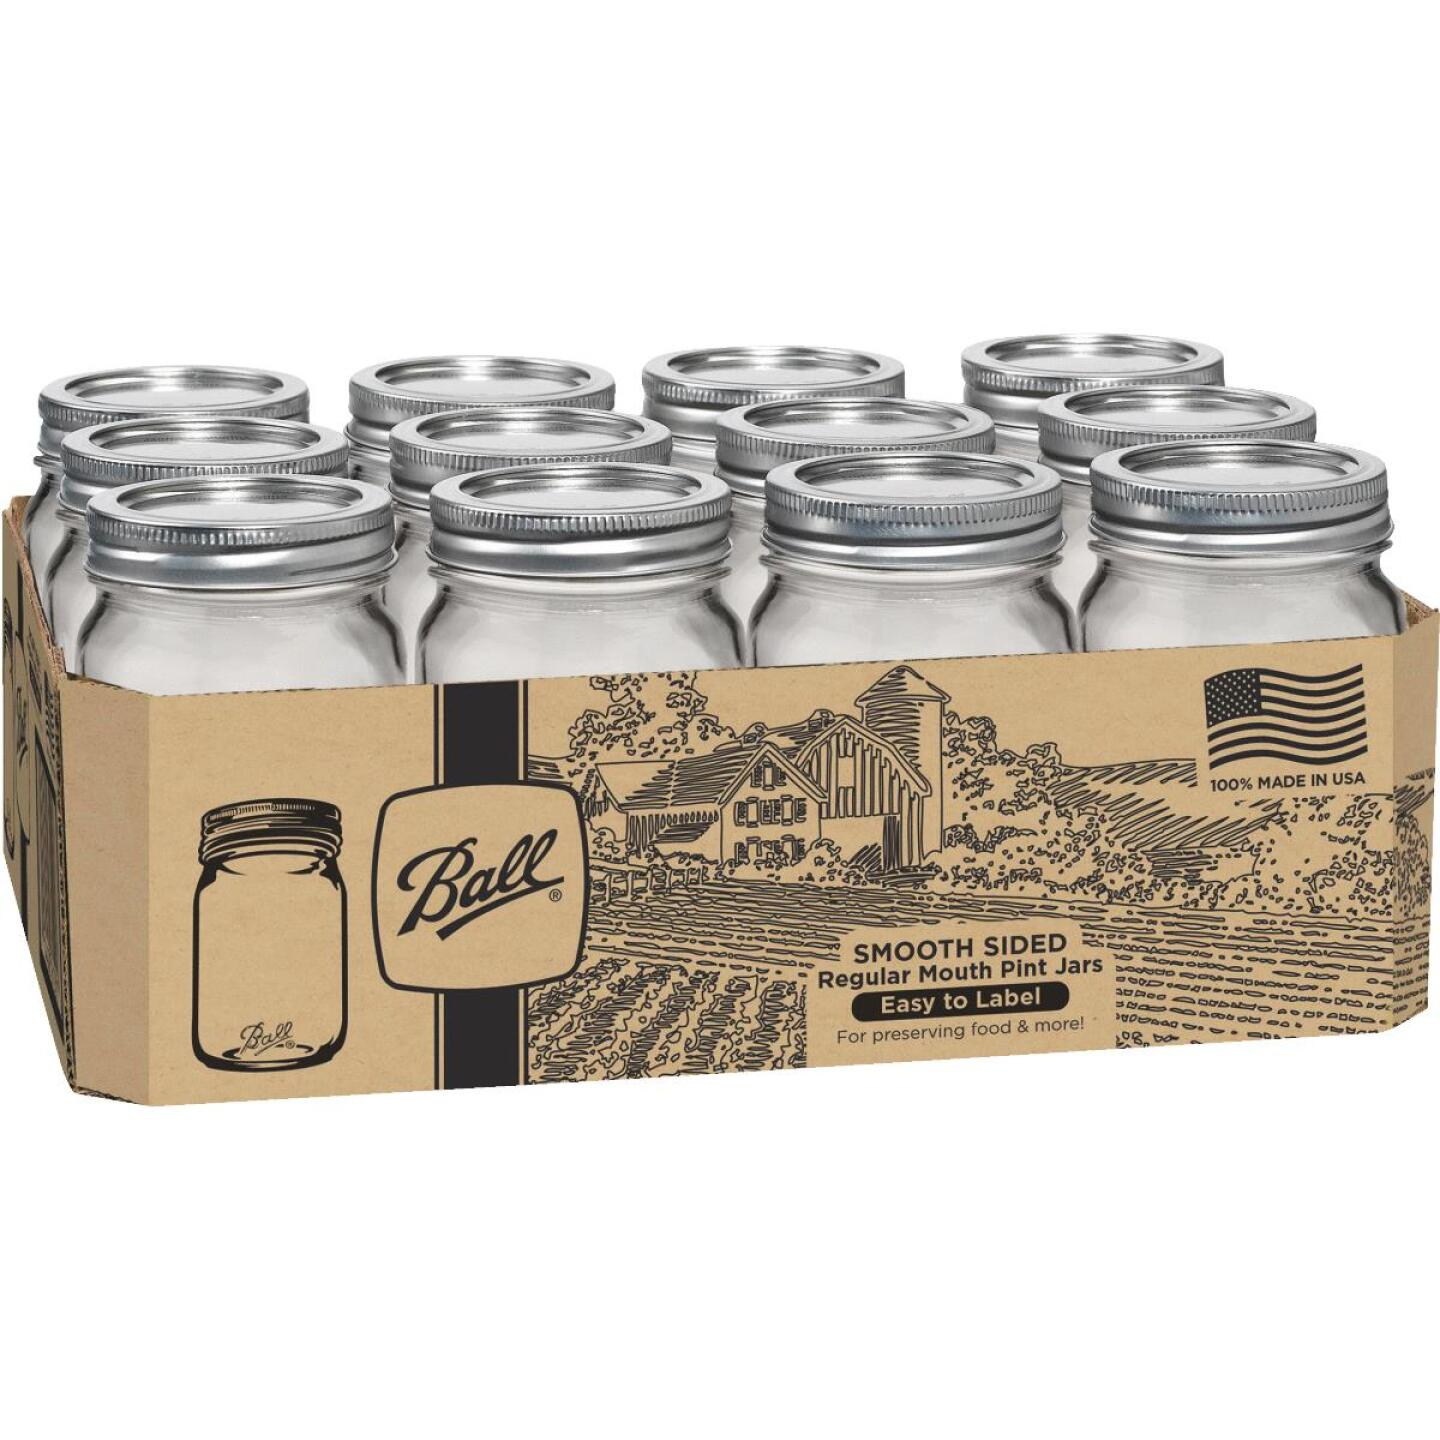 Ball Pint Regular Mouth Smooth-Sided Silver Lid Canning Jar (12-Count) Image 1